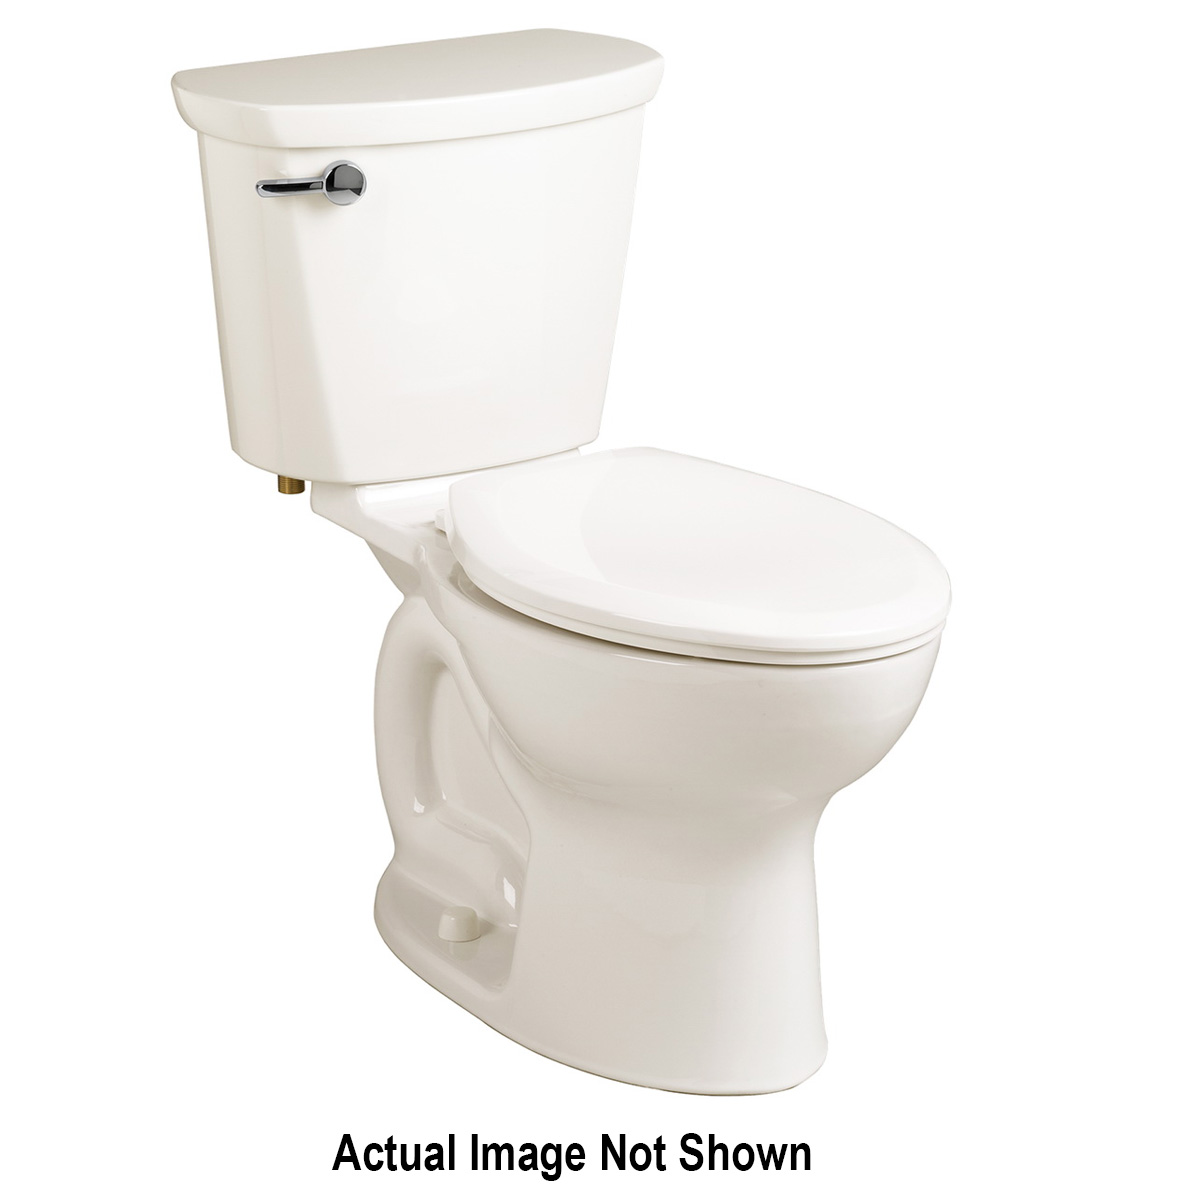 American Standard 3517C101.020 Cadet® Pro™ Toilet Bowl, Elongated, 9 x 8 in, 2-1/8 in